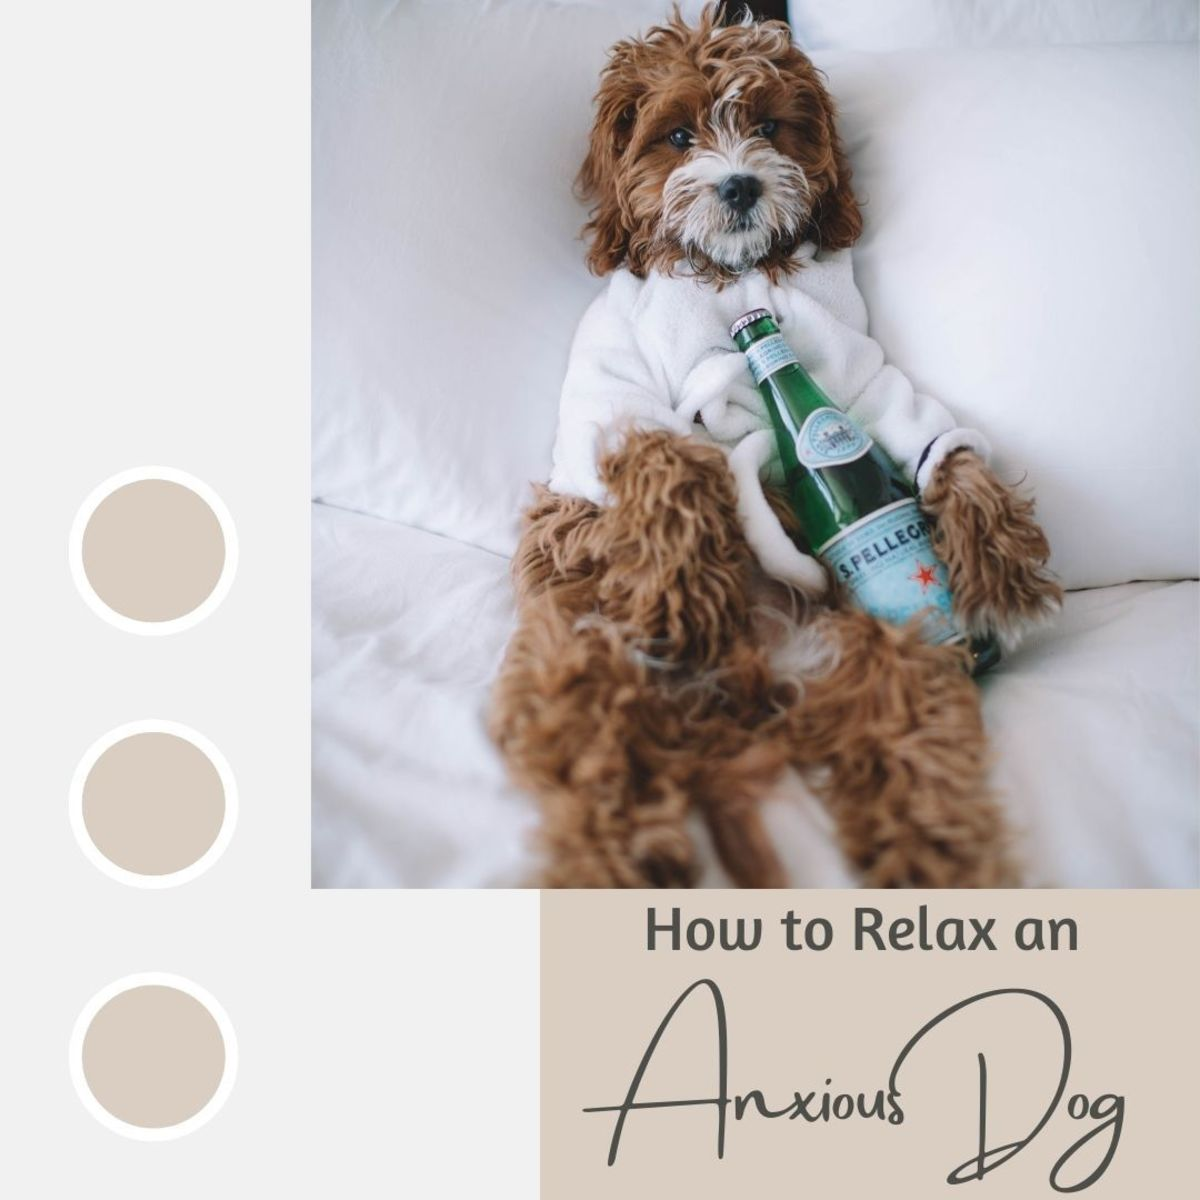 Why is my dog so tense? Learn how to relax your anxious pooch.